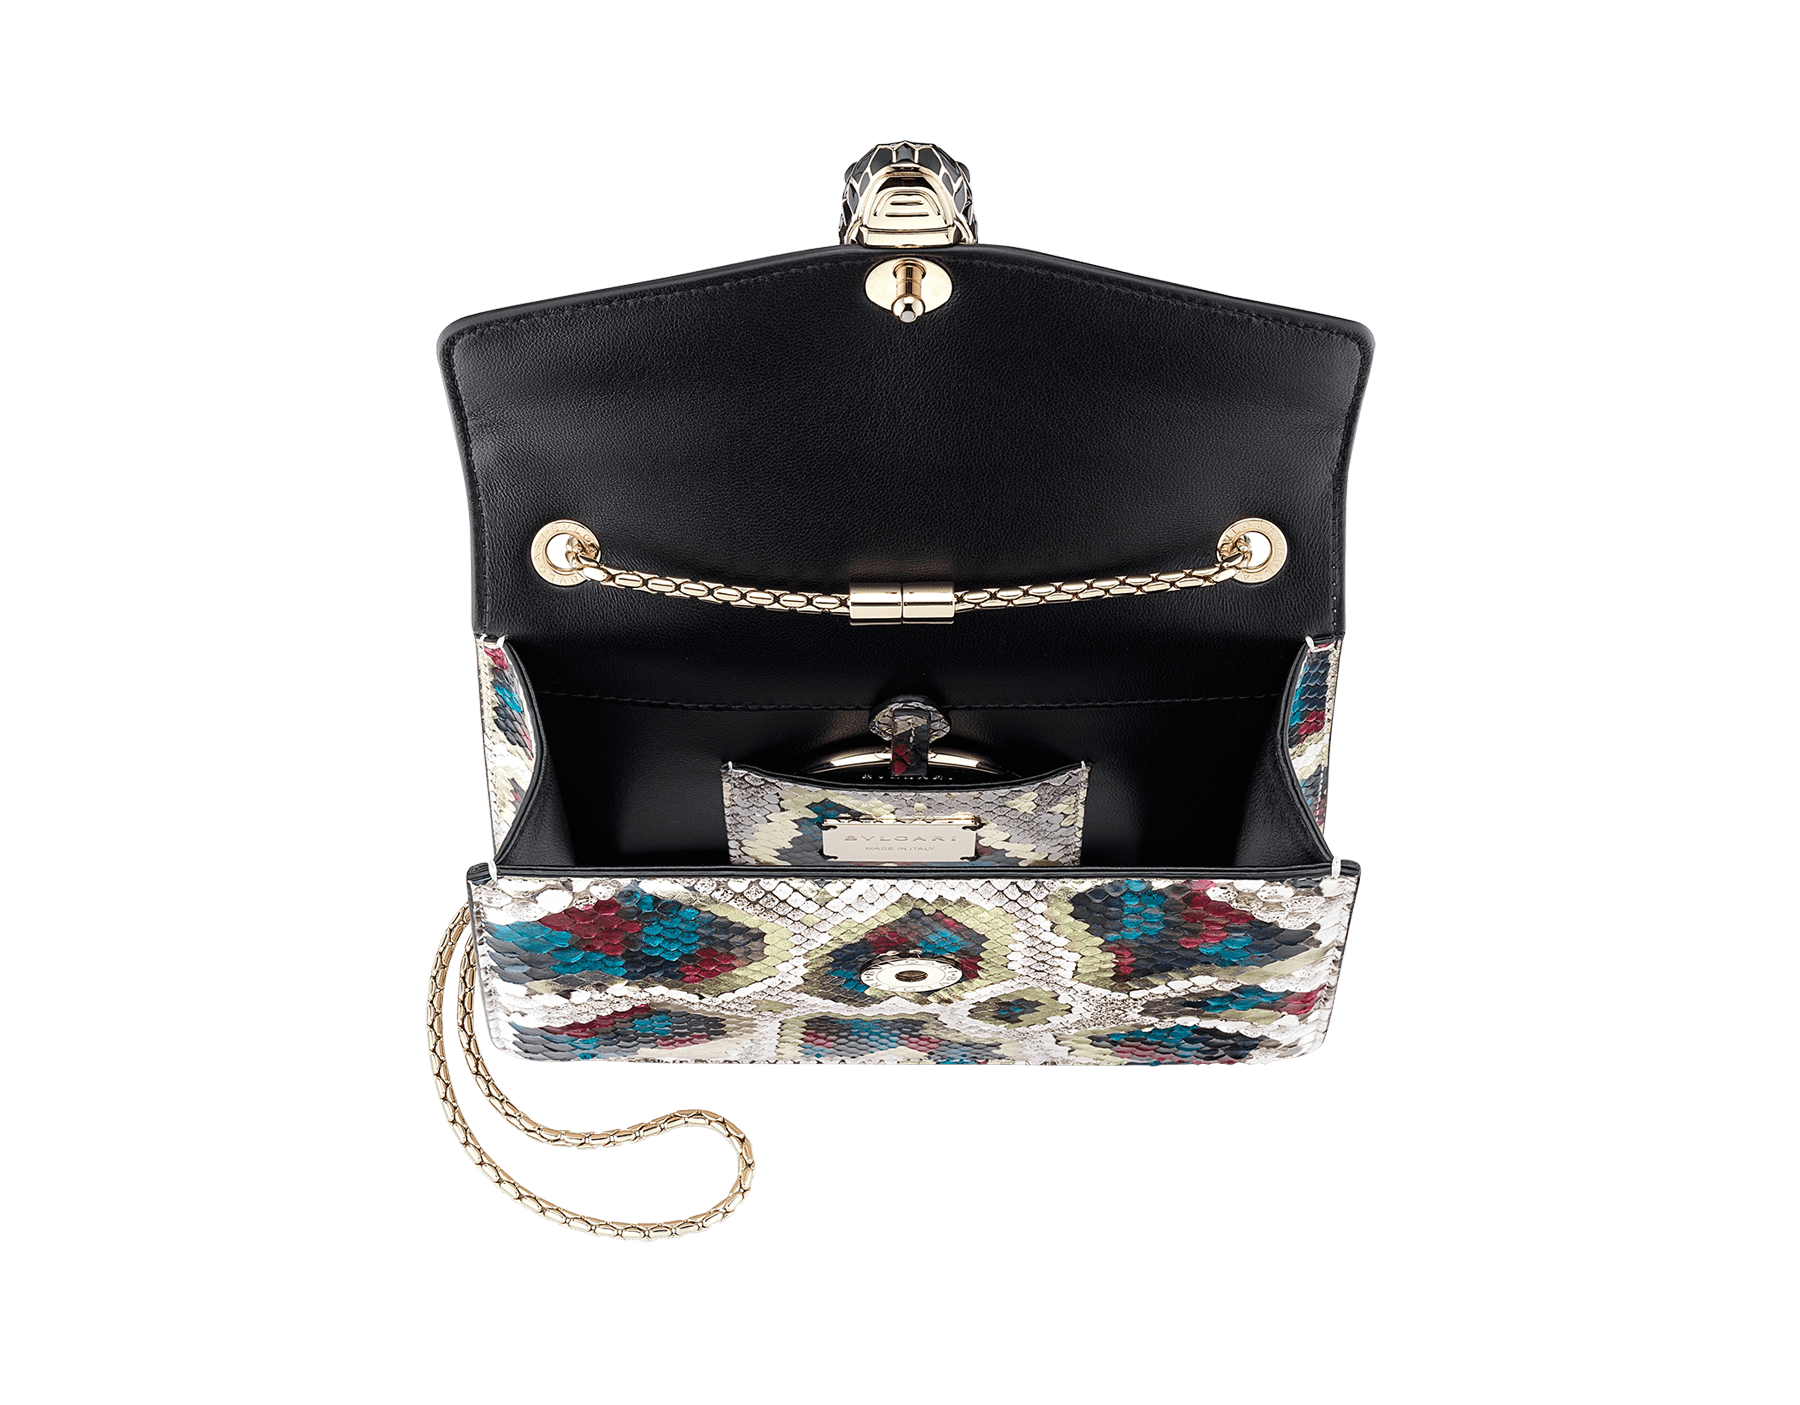 Sac à bandoulière Serpenti Forever en python « Magic Chromaline » multicolore. Fermoir emblématique Serpenti en laiton doré et émail noir et blanc avec yeux en onyx. 422-Pc image 4